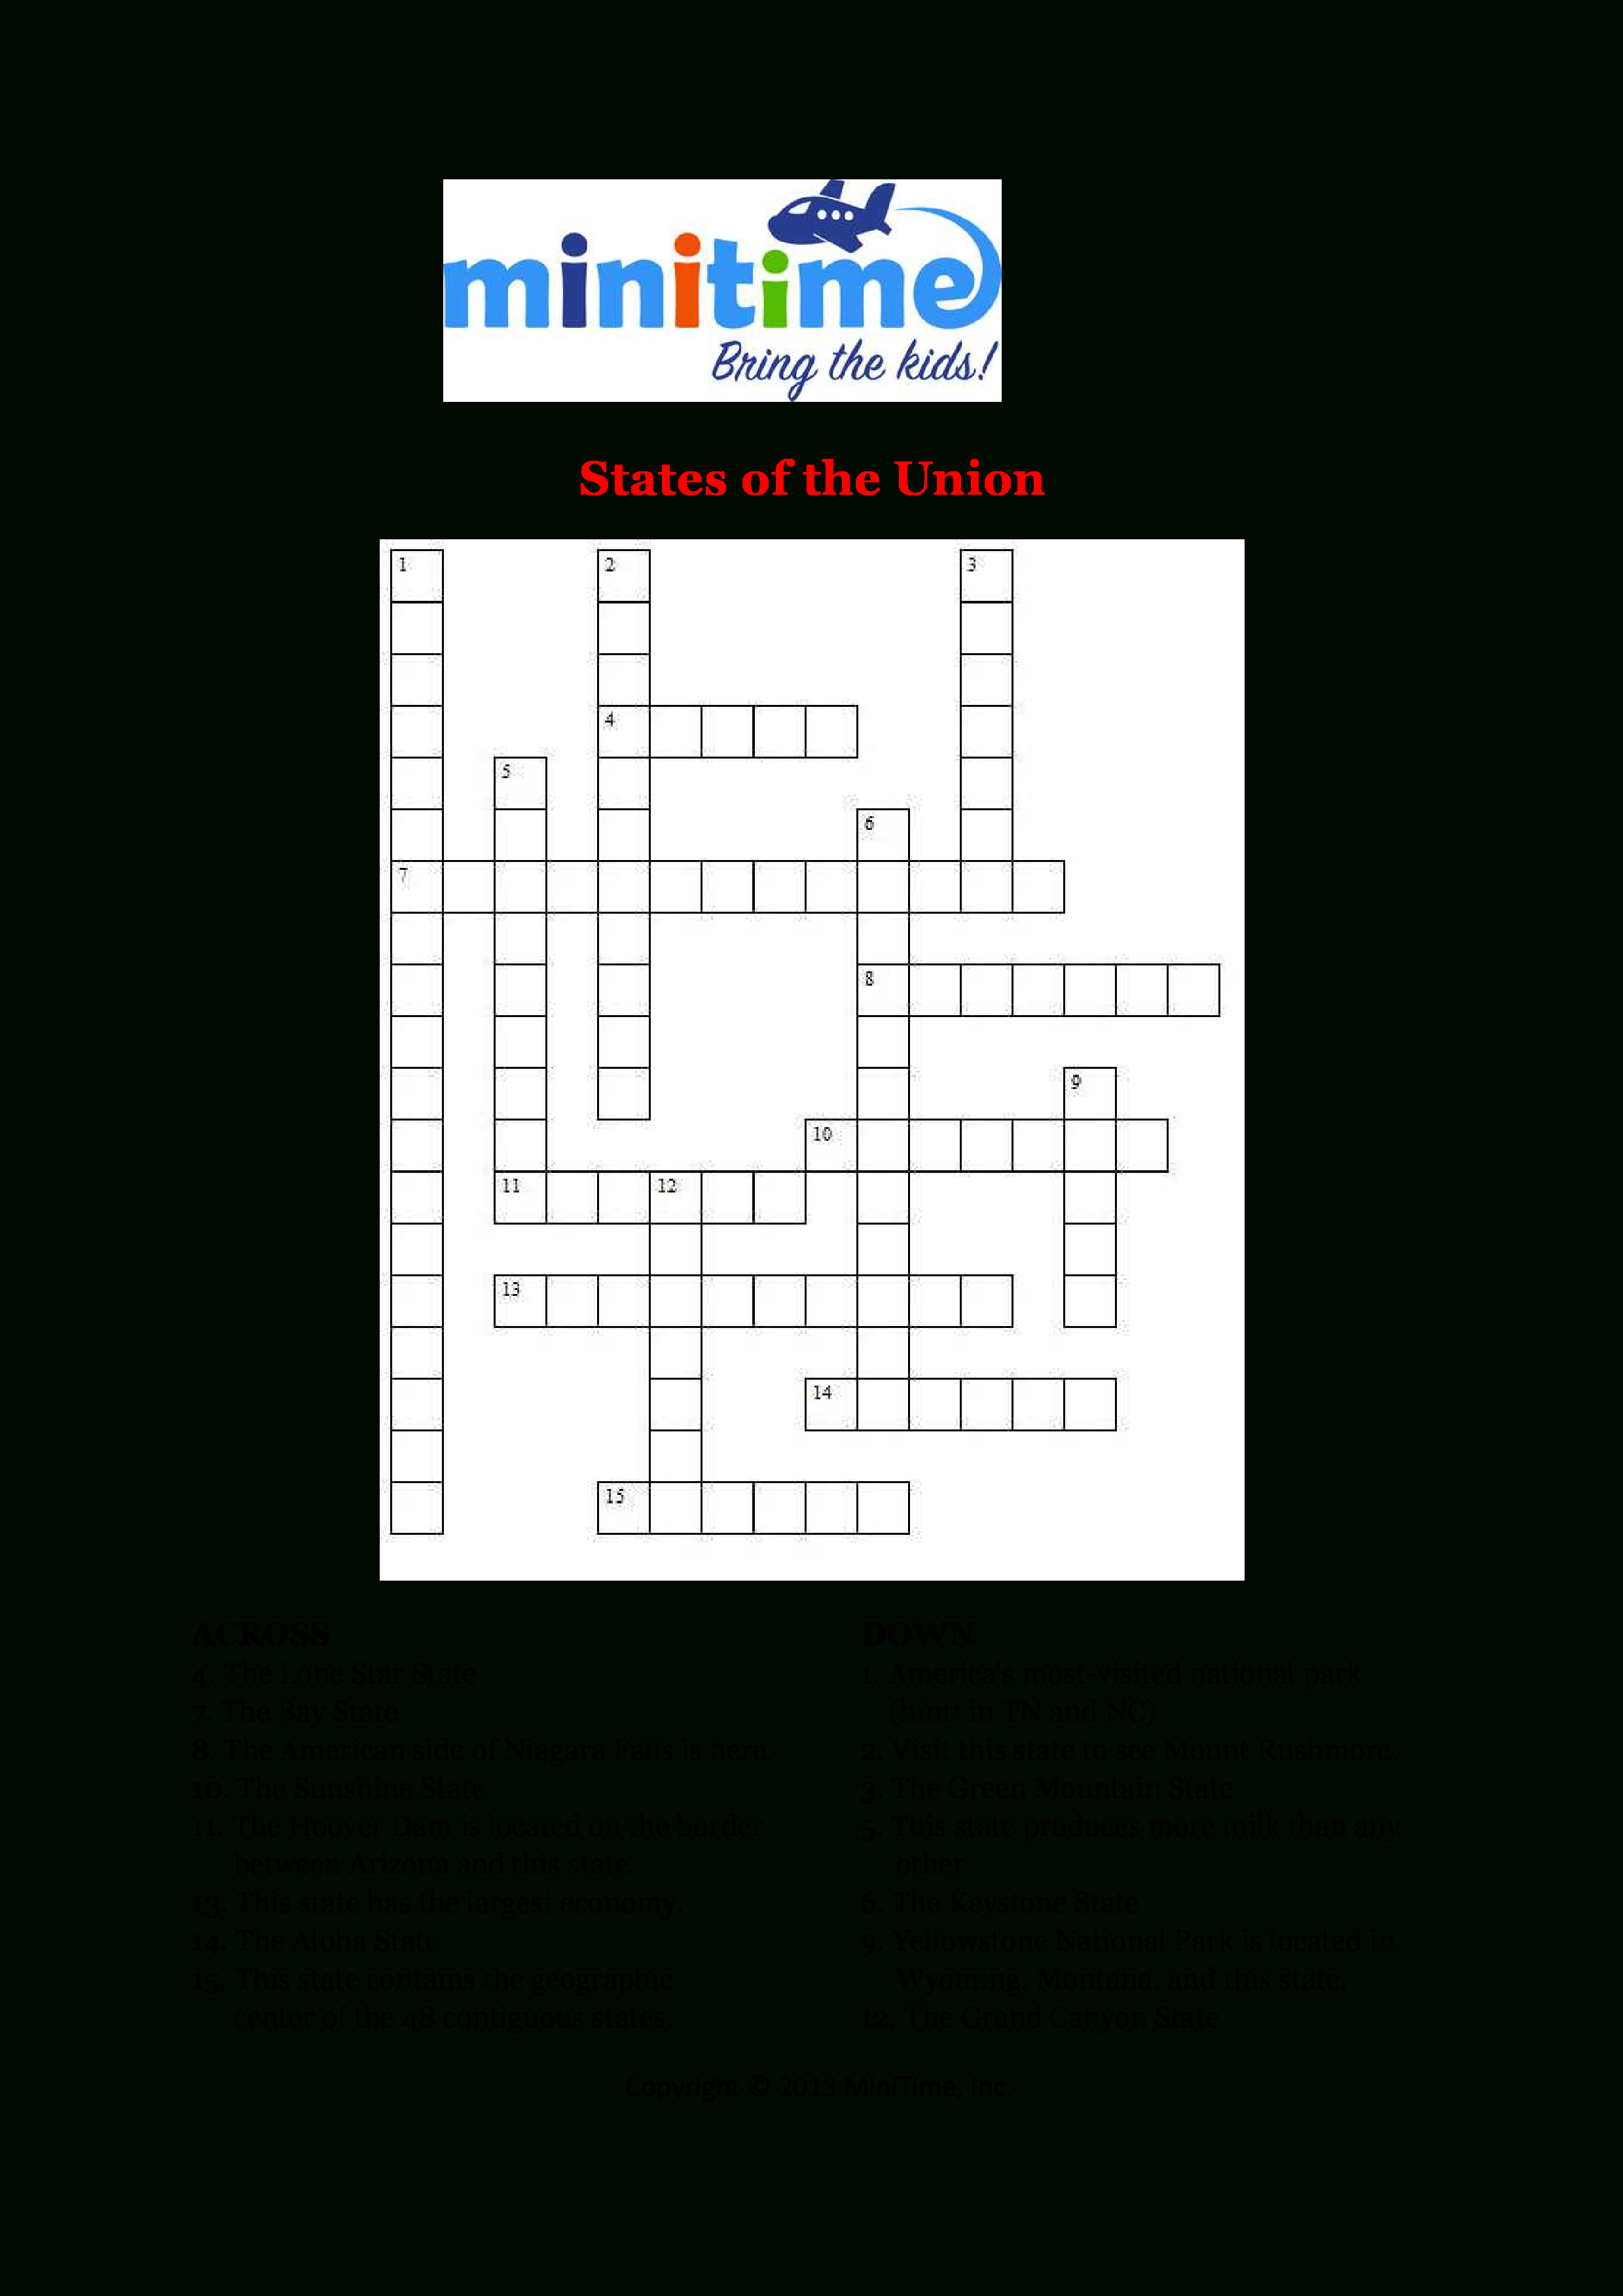 Us States Fun Facts Crossword Puzzles | Free Printable Travel - Car Crossword Puzzles Printable